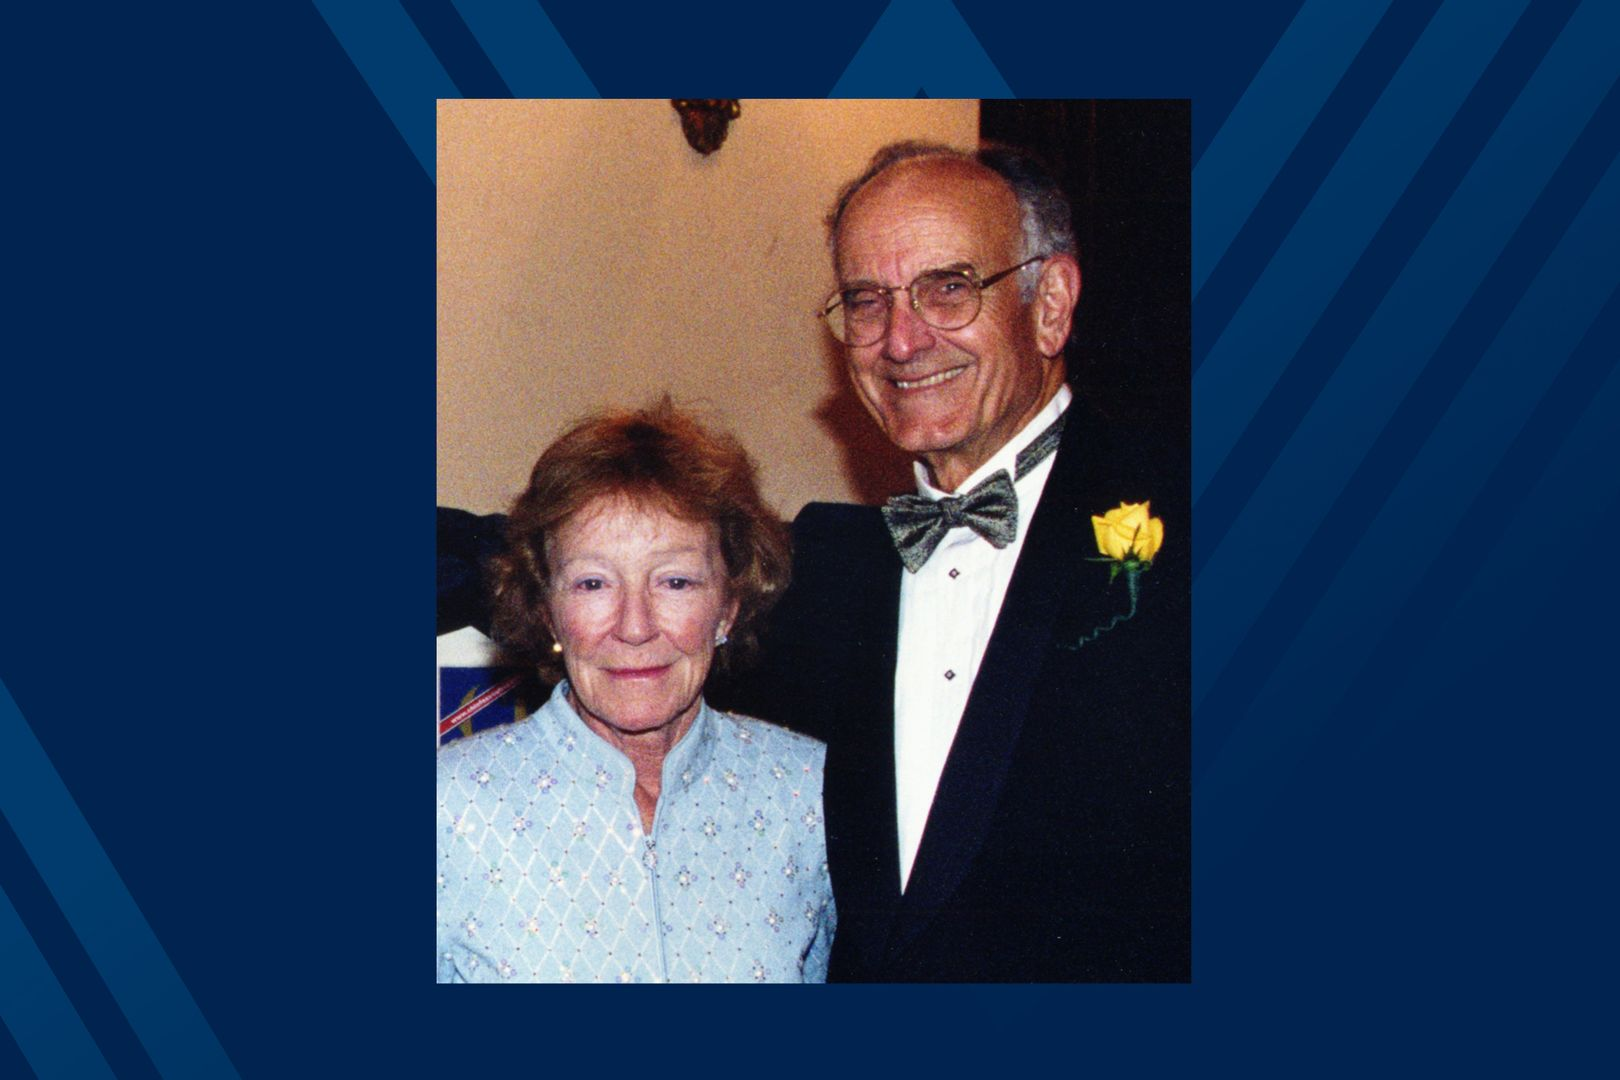 older couple in formal clothing on blue background